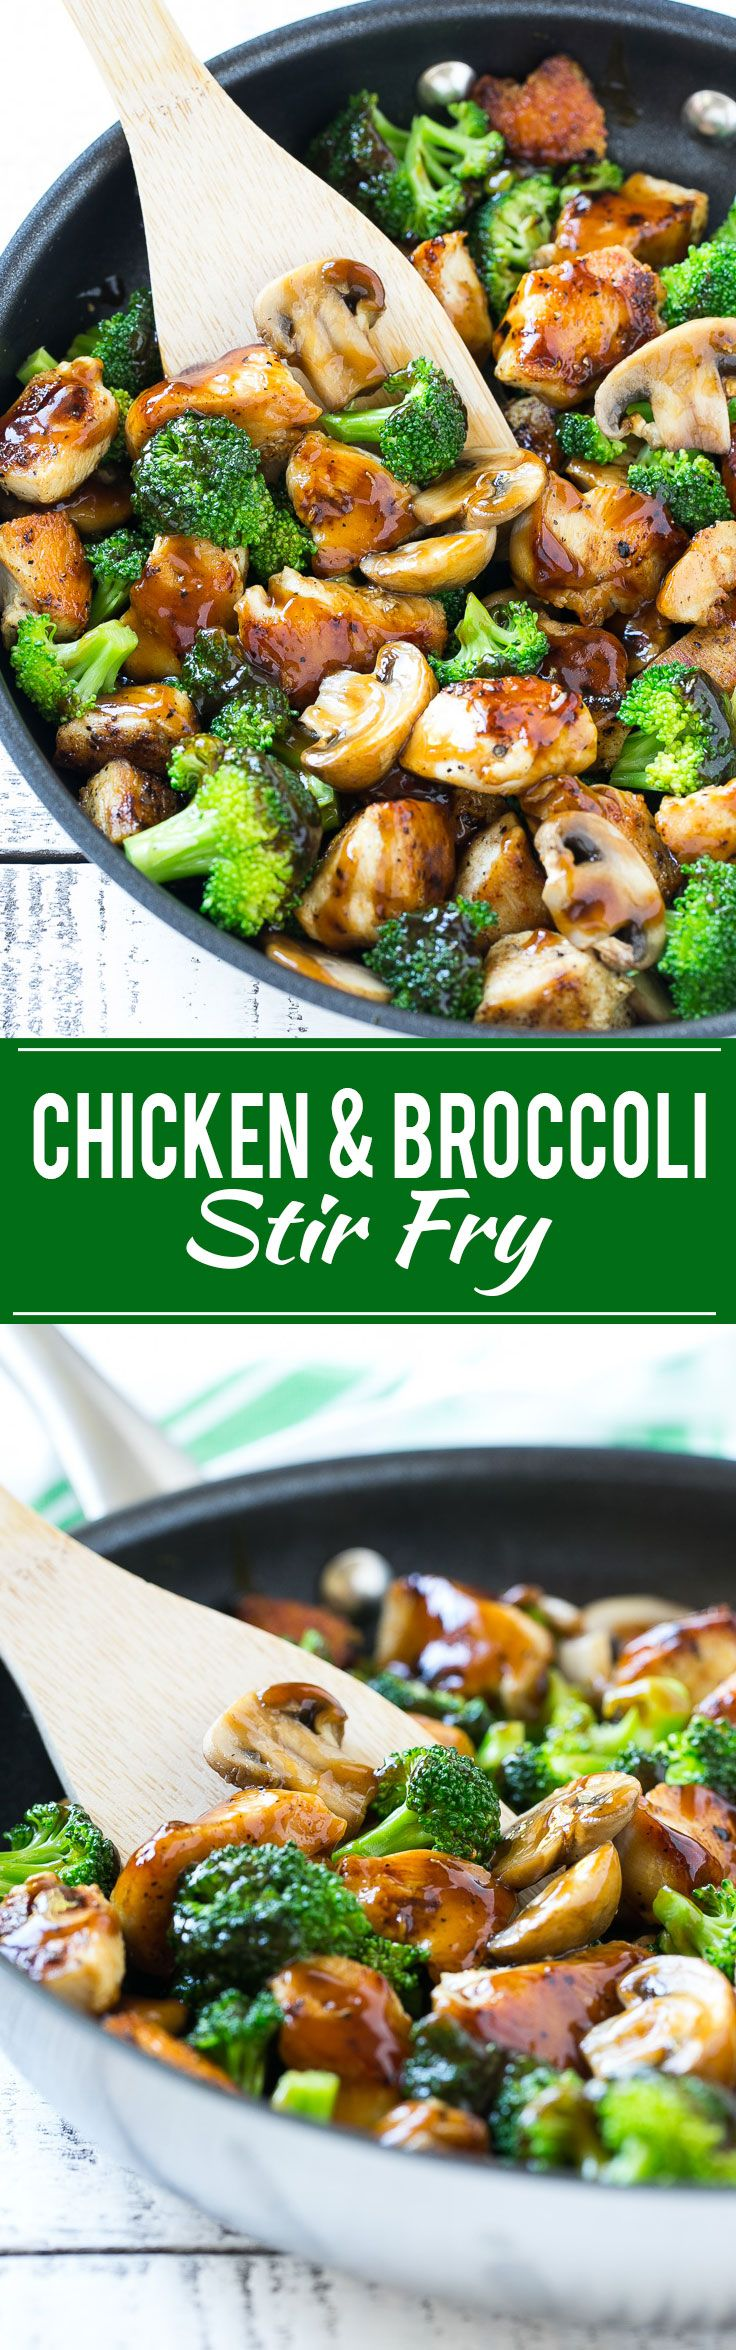 This recipe for chicken and broccoli stir fry is a classic dish of chicken sauteed with fresh broccoli florets and coated in a savory sauce. You can have a healthy and easy dinner on the table in 30 minutes! ad @kitchenfairus